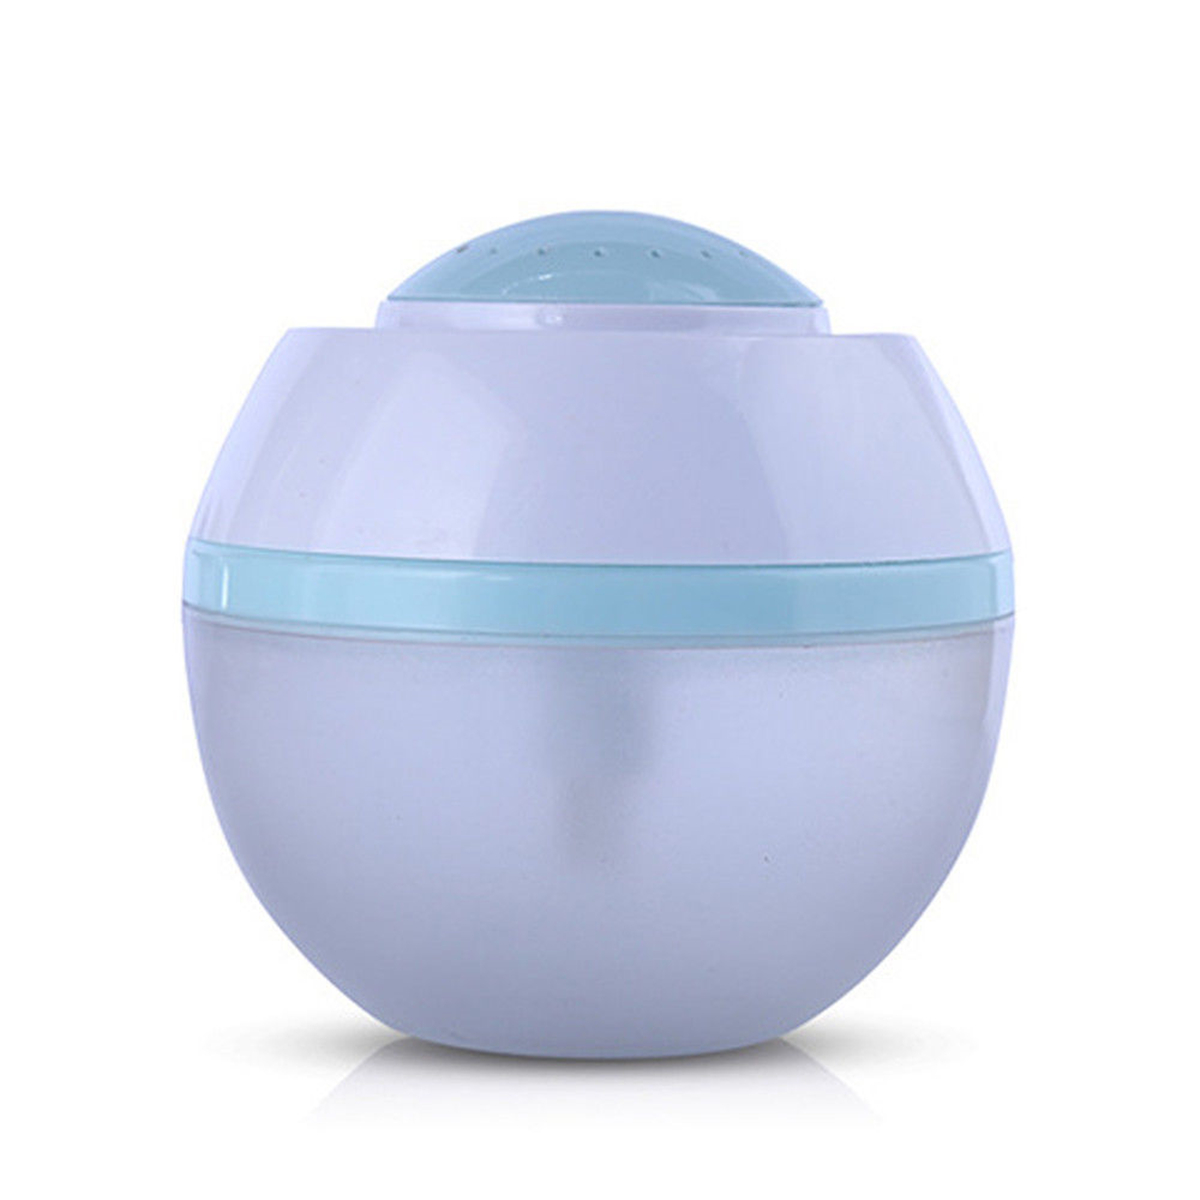 500ml LED USB Air Aroma Humidifier Ultrasonic Changing Essential Diffuser